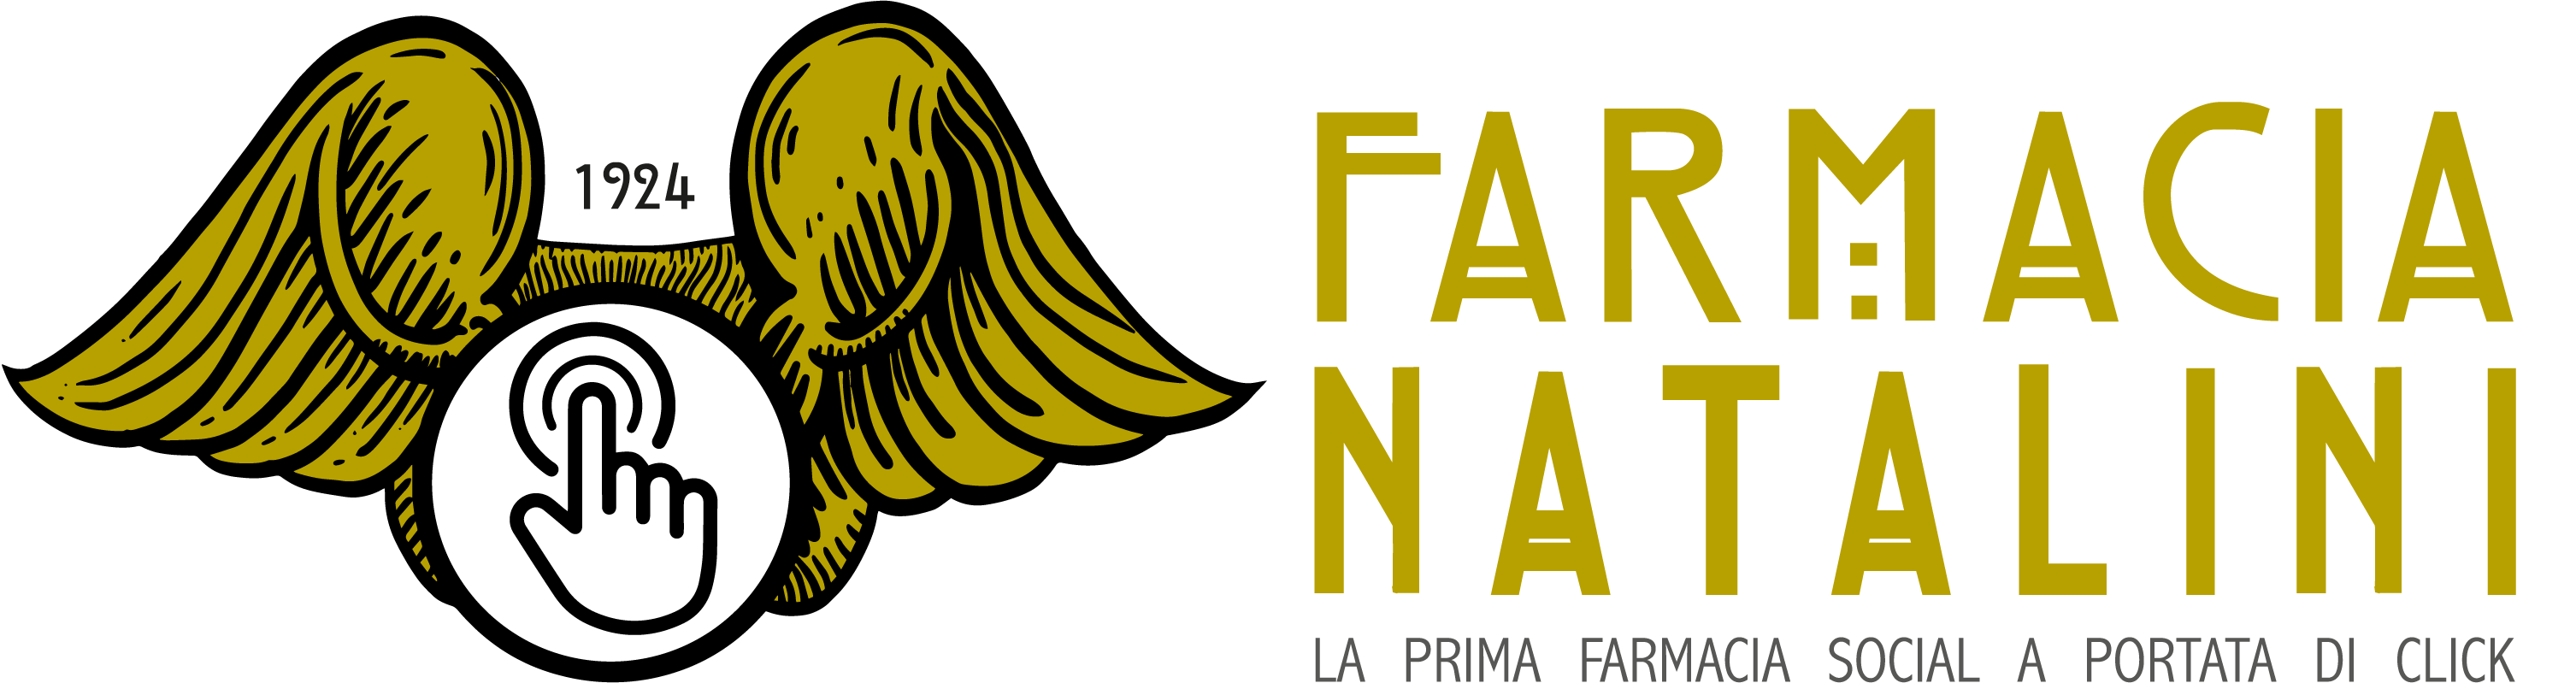 Farmacia Natalini